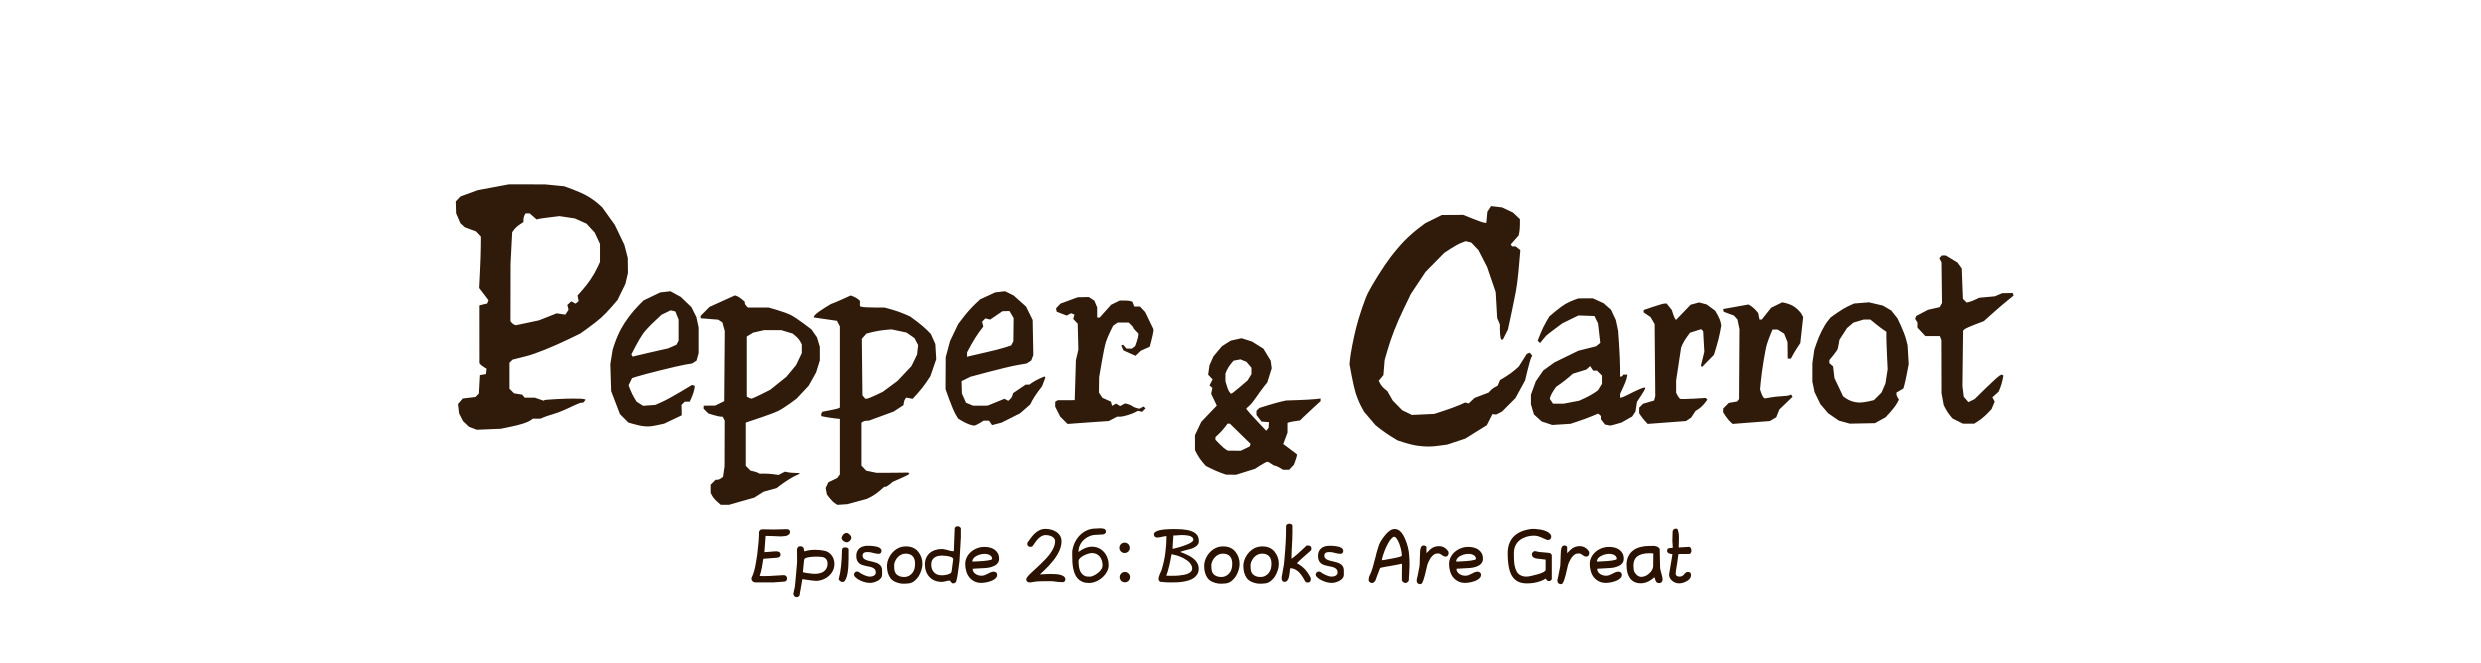 Episode 26: Books Are Great